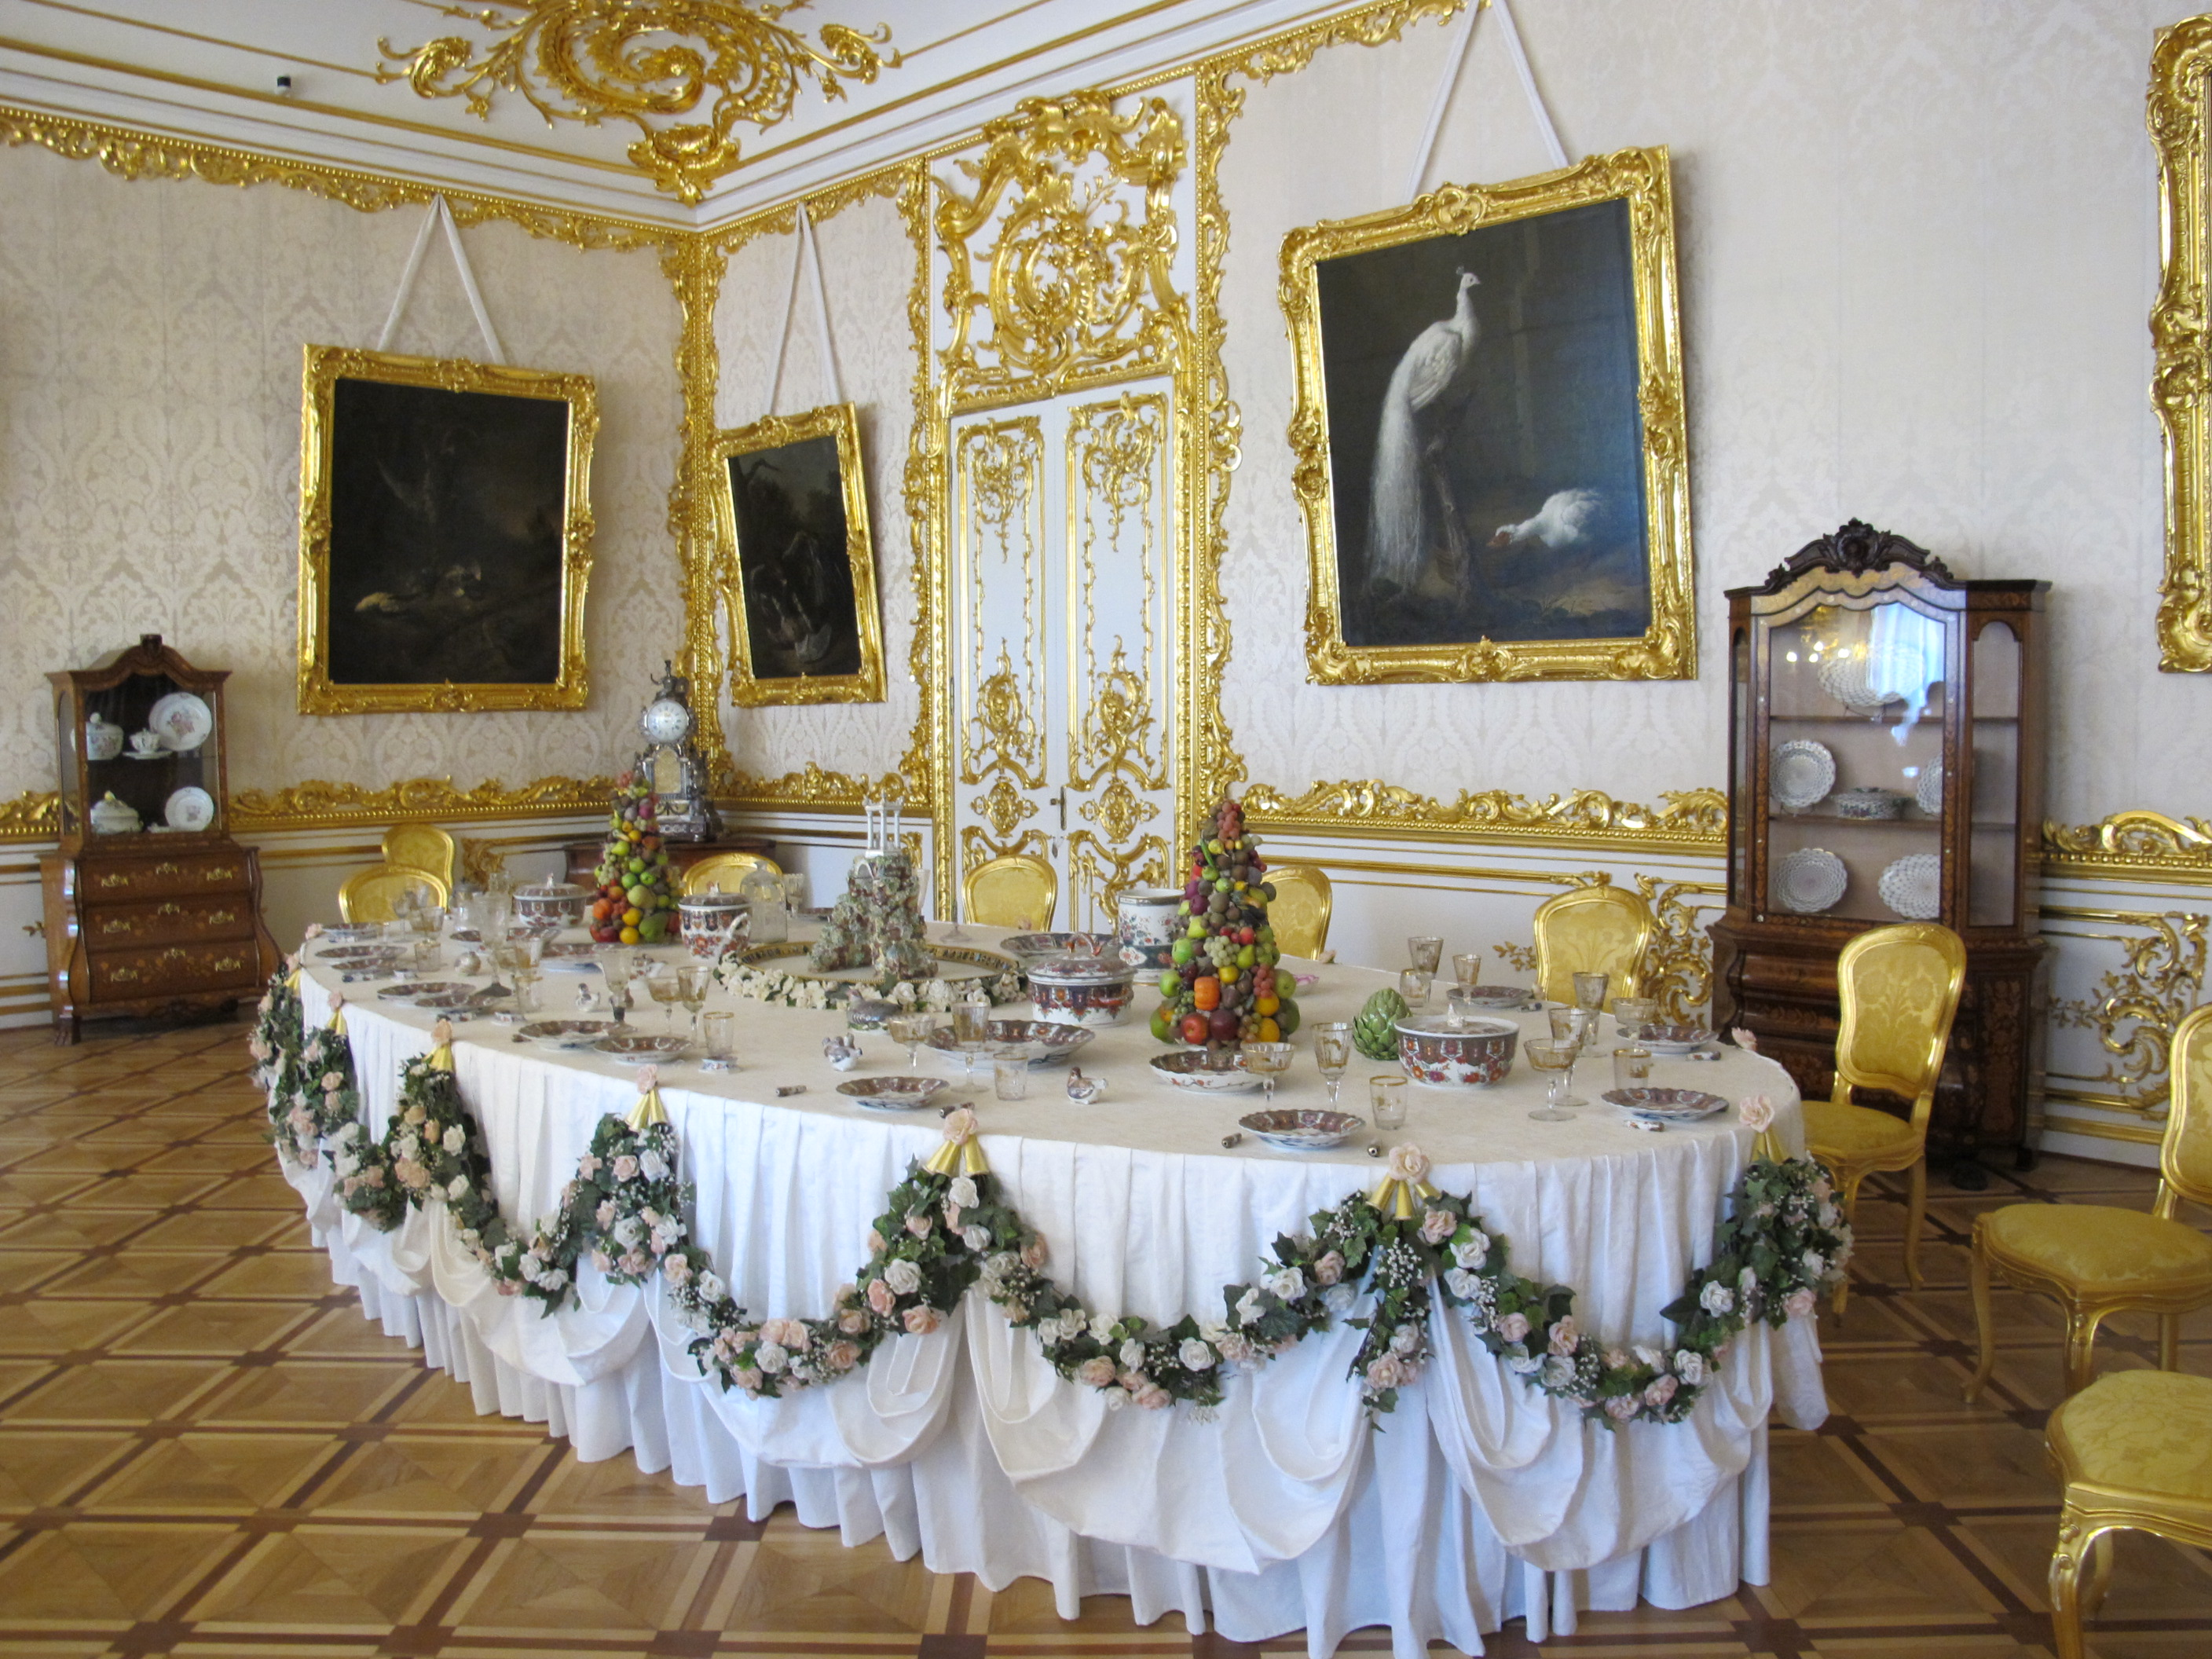 file:white front dining room of catherine palace 02